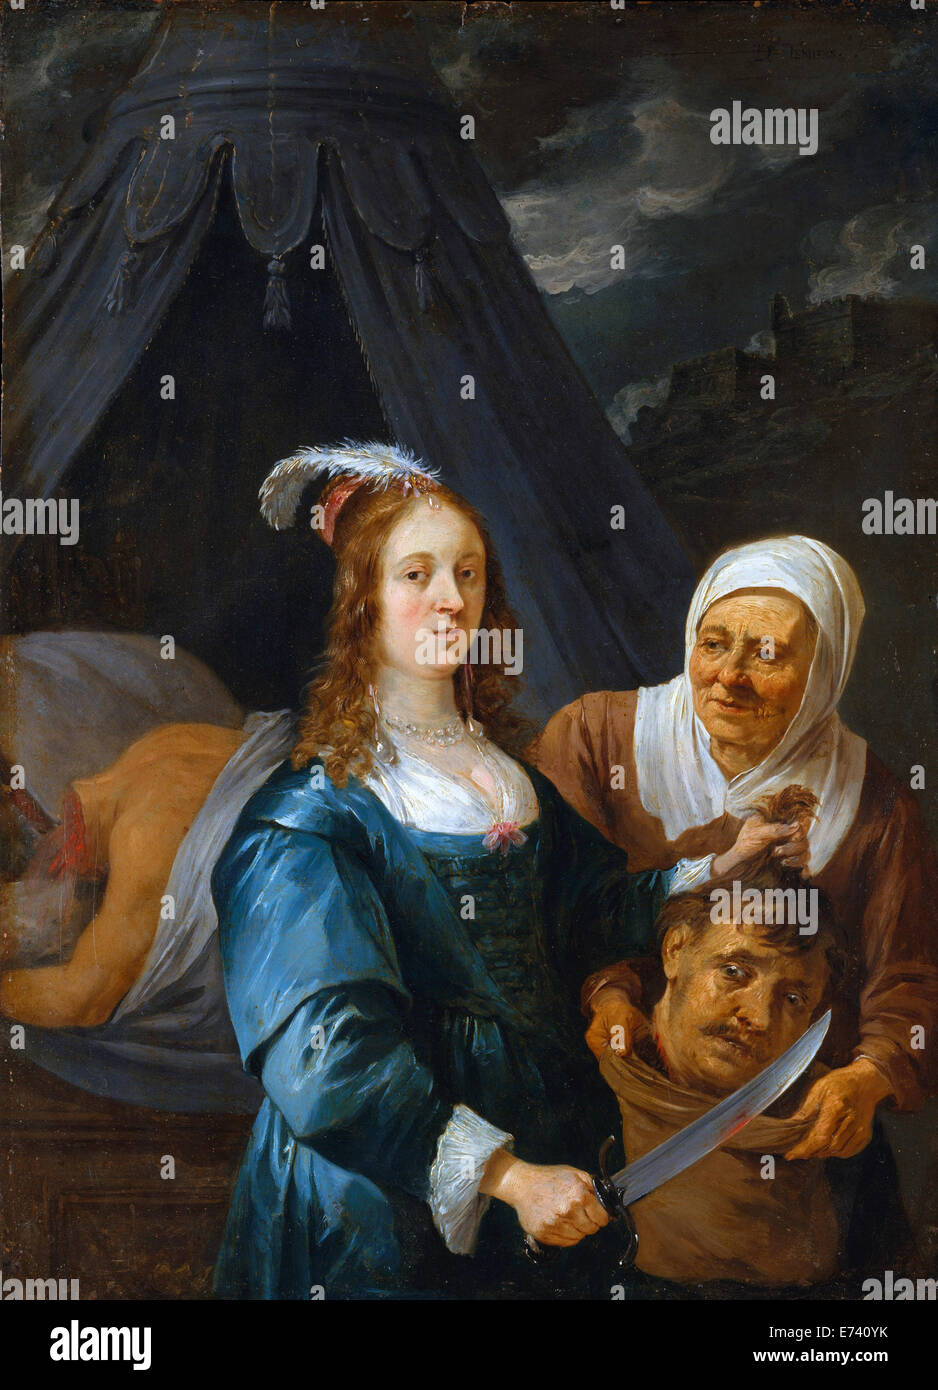 Judith with the Head of Holofernes - by David Teniers the Younger, 1650 - Stock Image